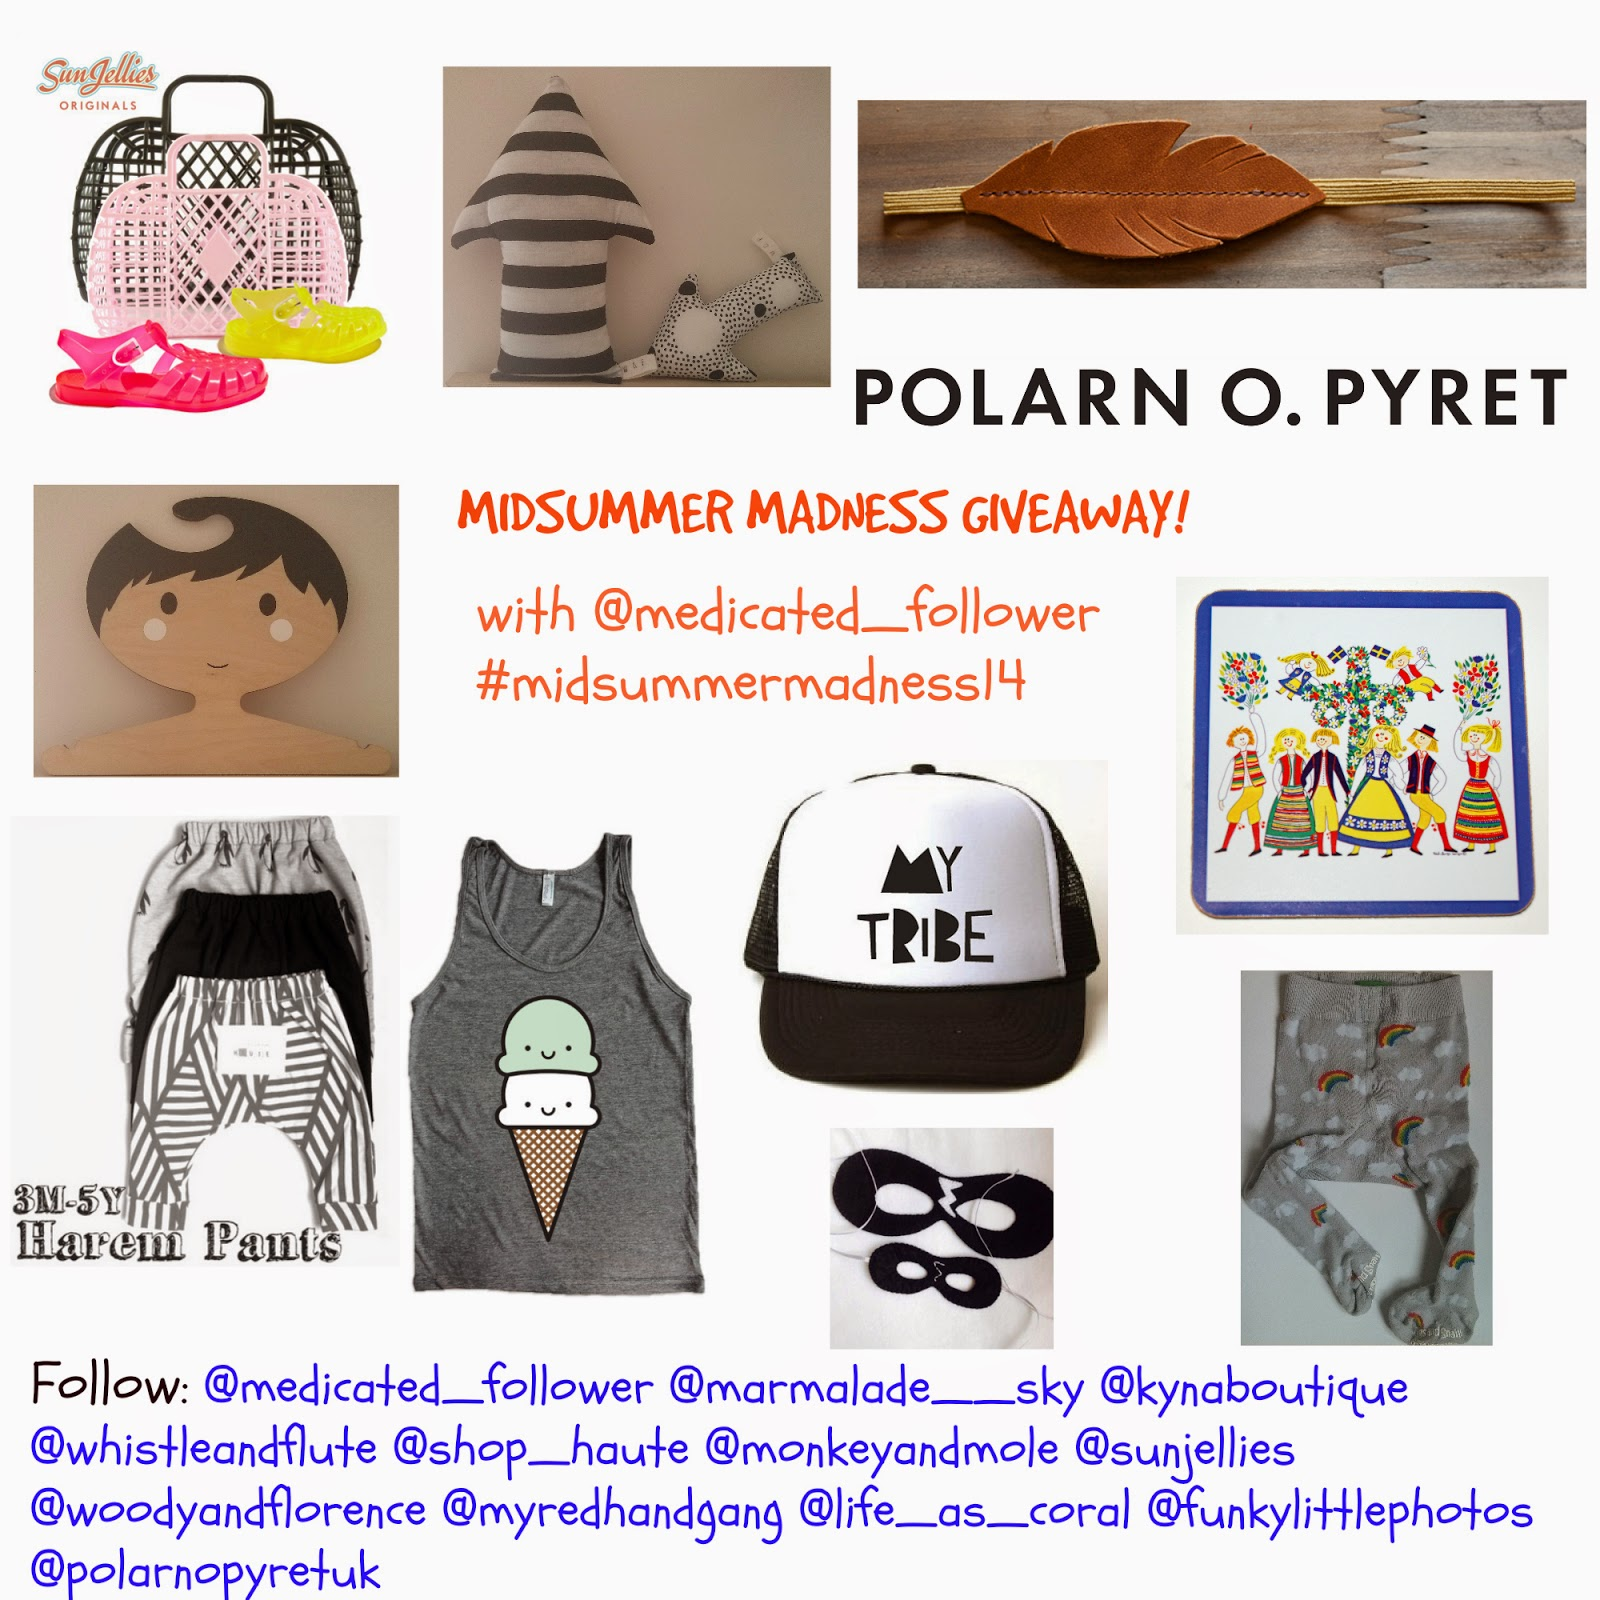 Midsummer Madness Instagram Giveaway with @Medicated_Follower